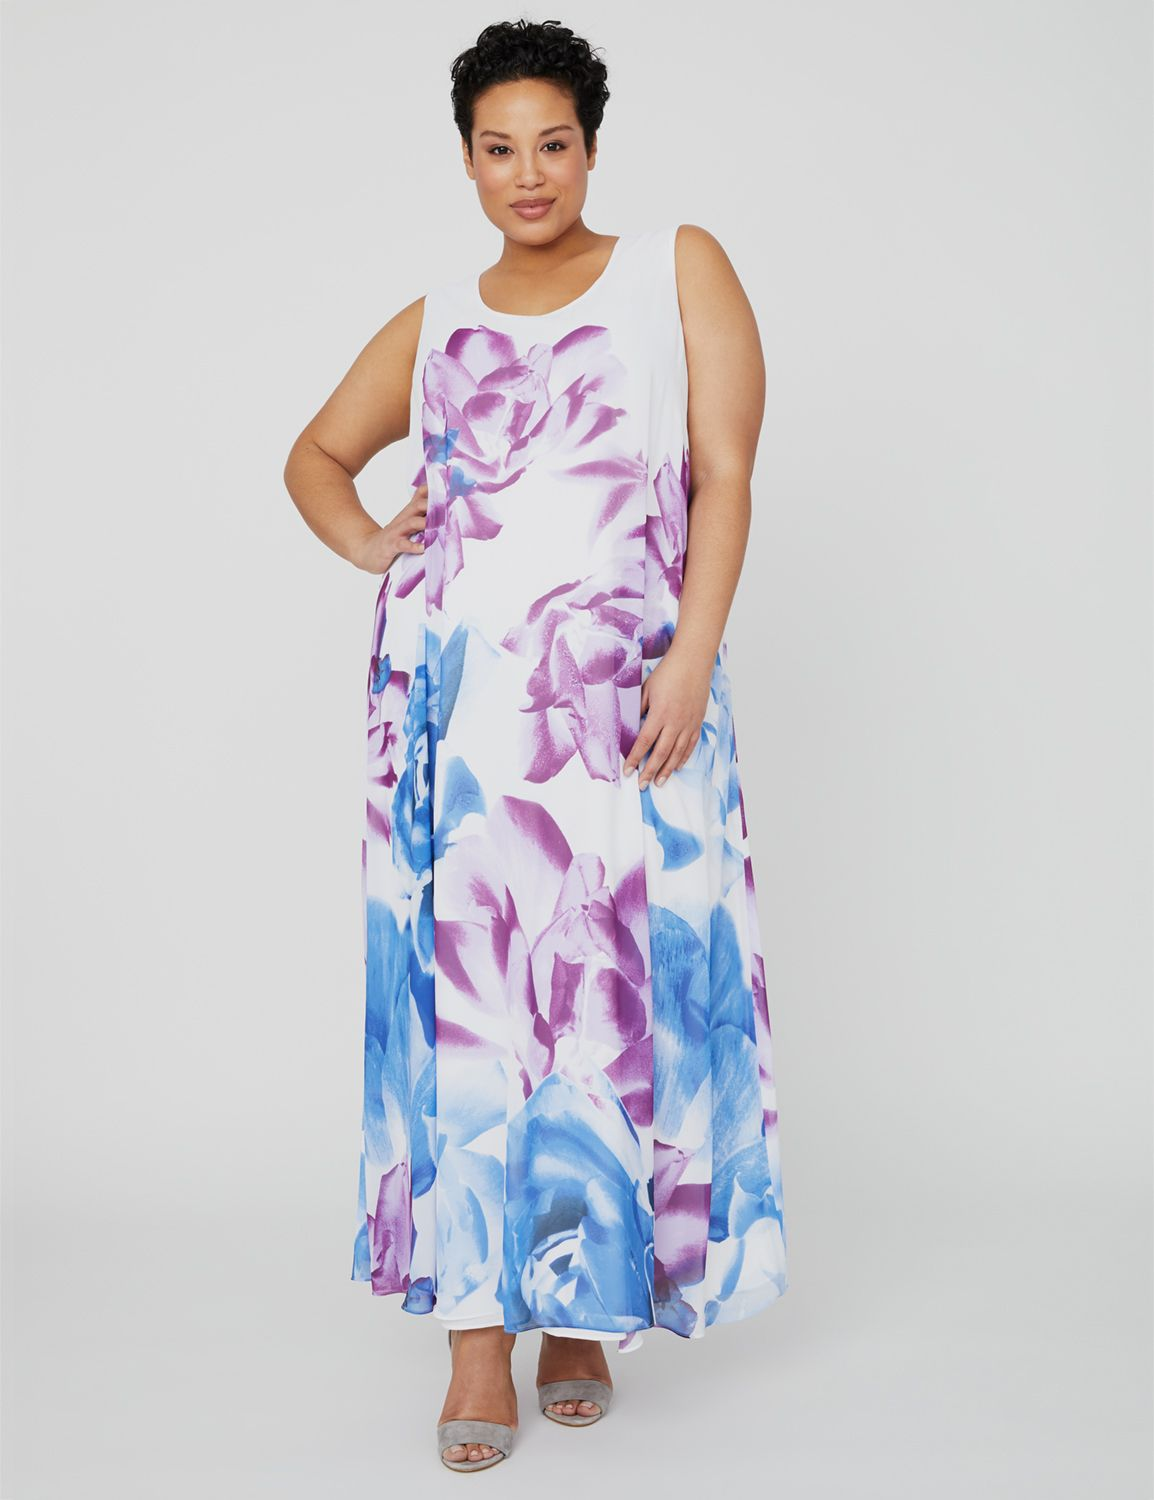 Black Label Rosebloom Maxi Dress 1088697 Printed Woven Sleeveless Ma MP-300100165